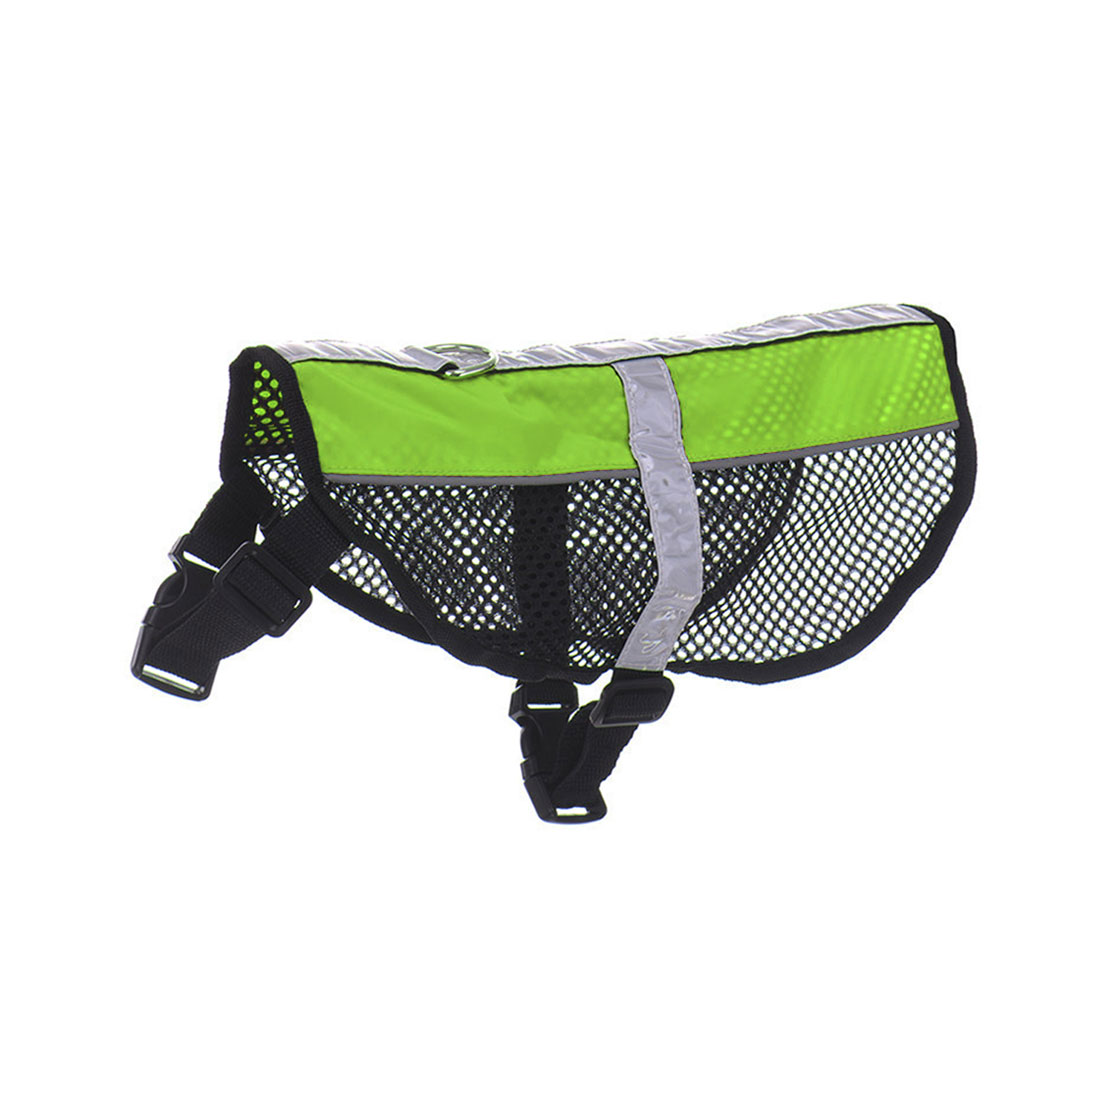 Service Dog Mesh Vest Harness Cool Comfort Nylon High Visibility Safety Jacket Green S